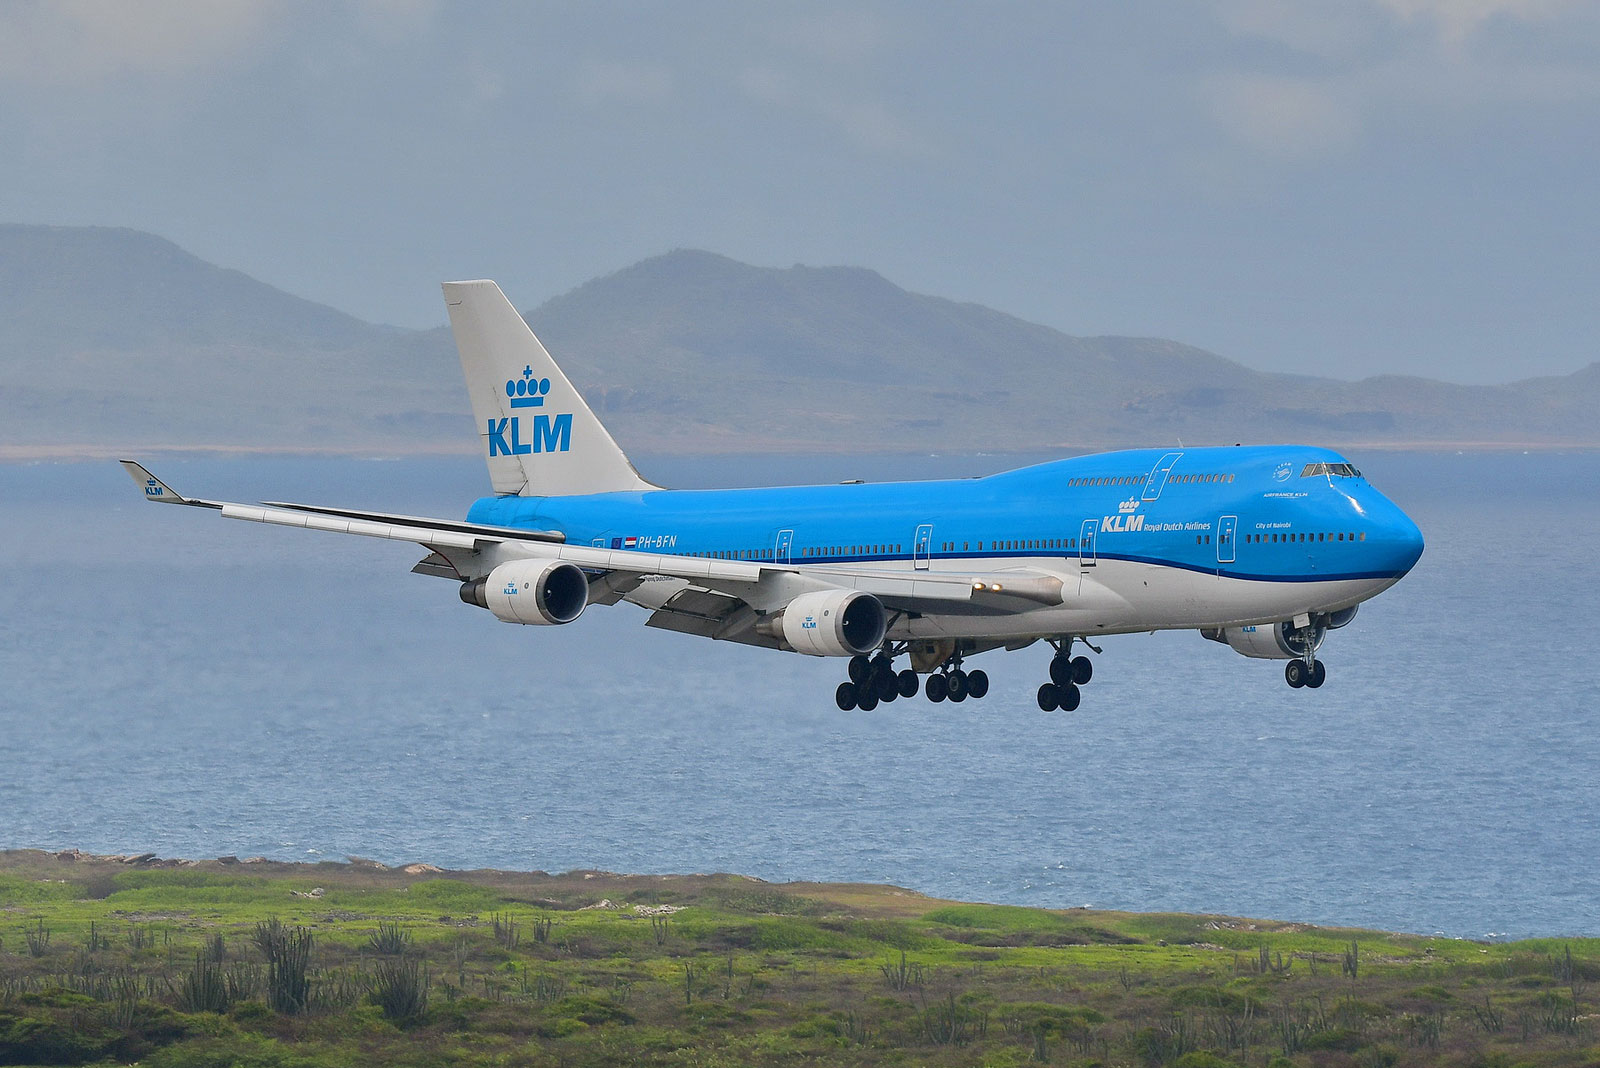 KLM's PH-BFN, B744 approaching the International Airport Hato in Curacao after a almost 9 hour flight from Amsterdam.